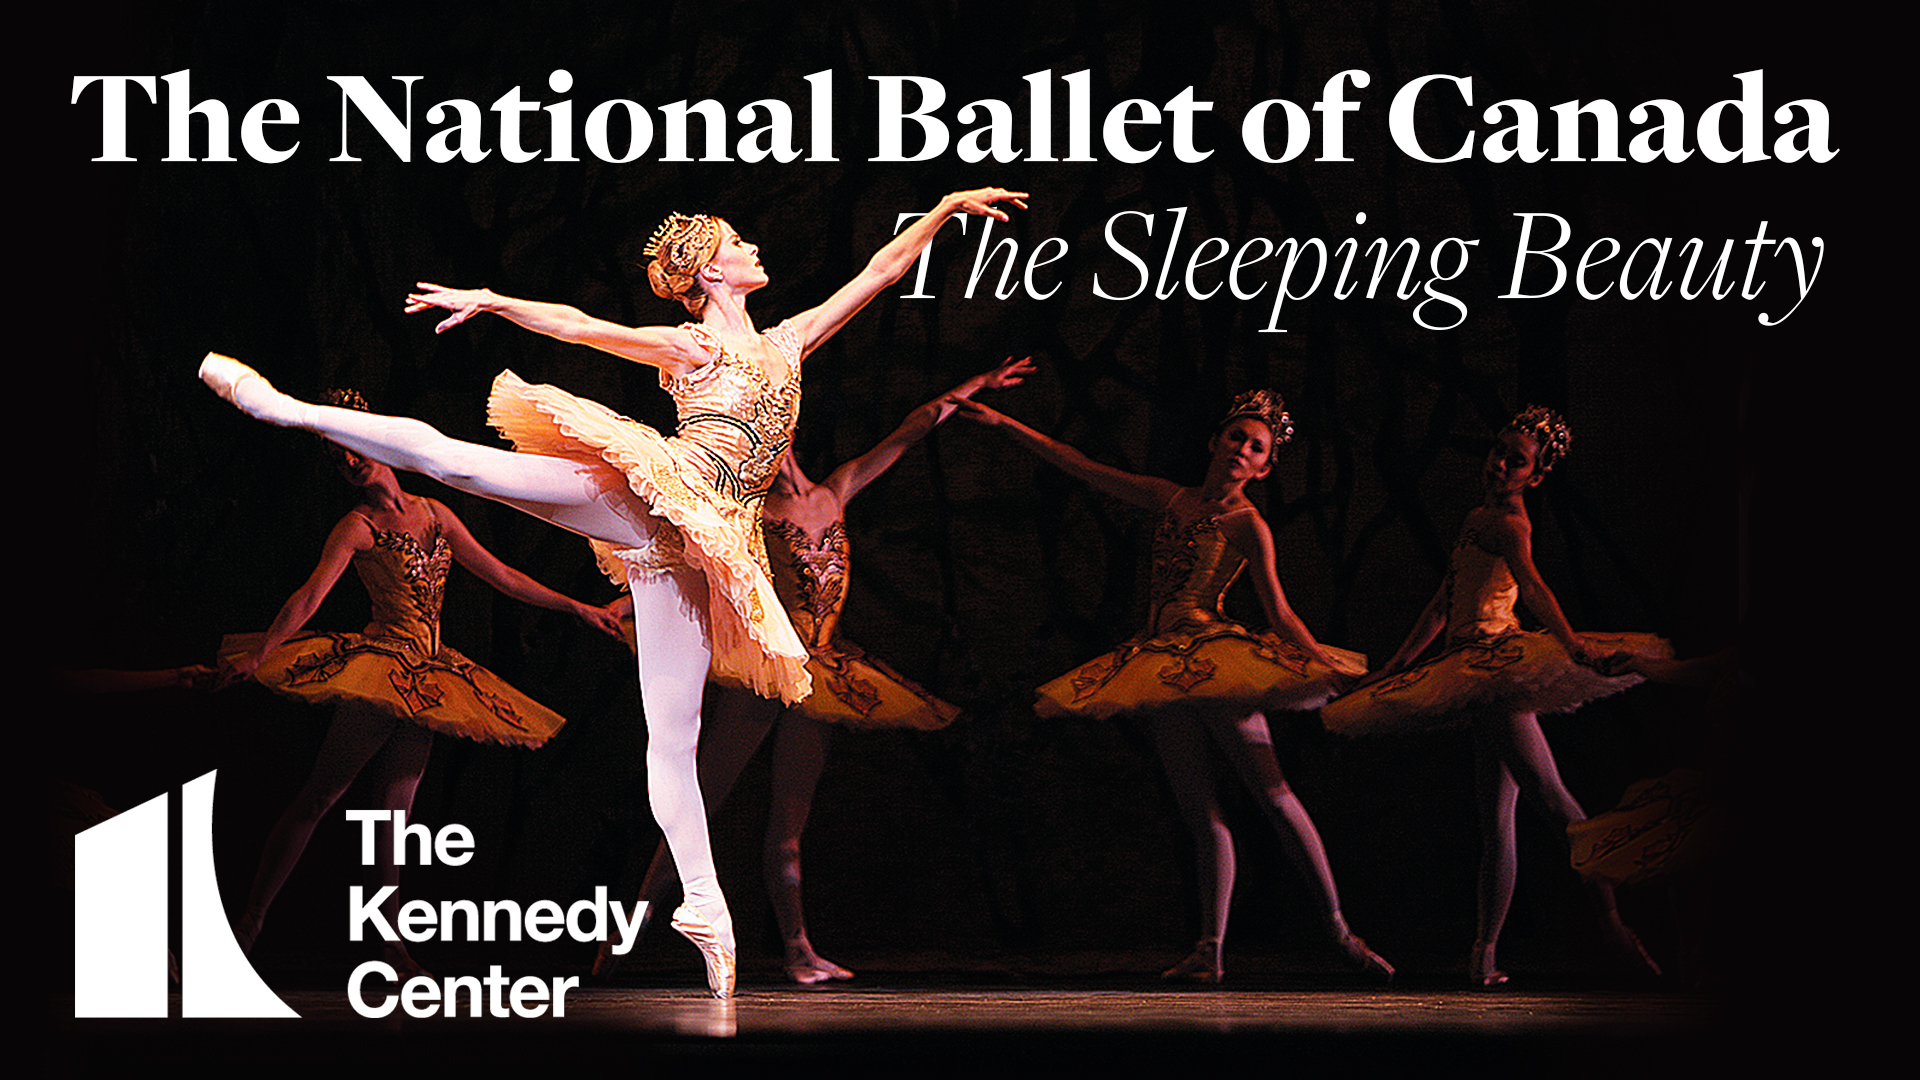 The National Ballet of Canada: